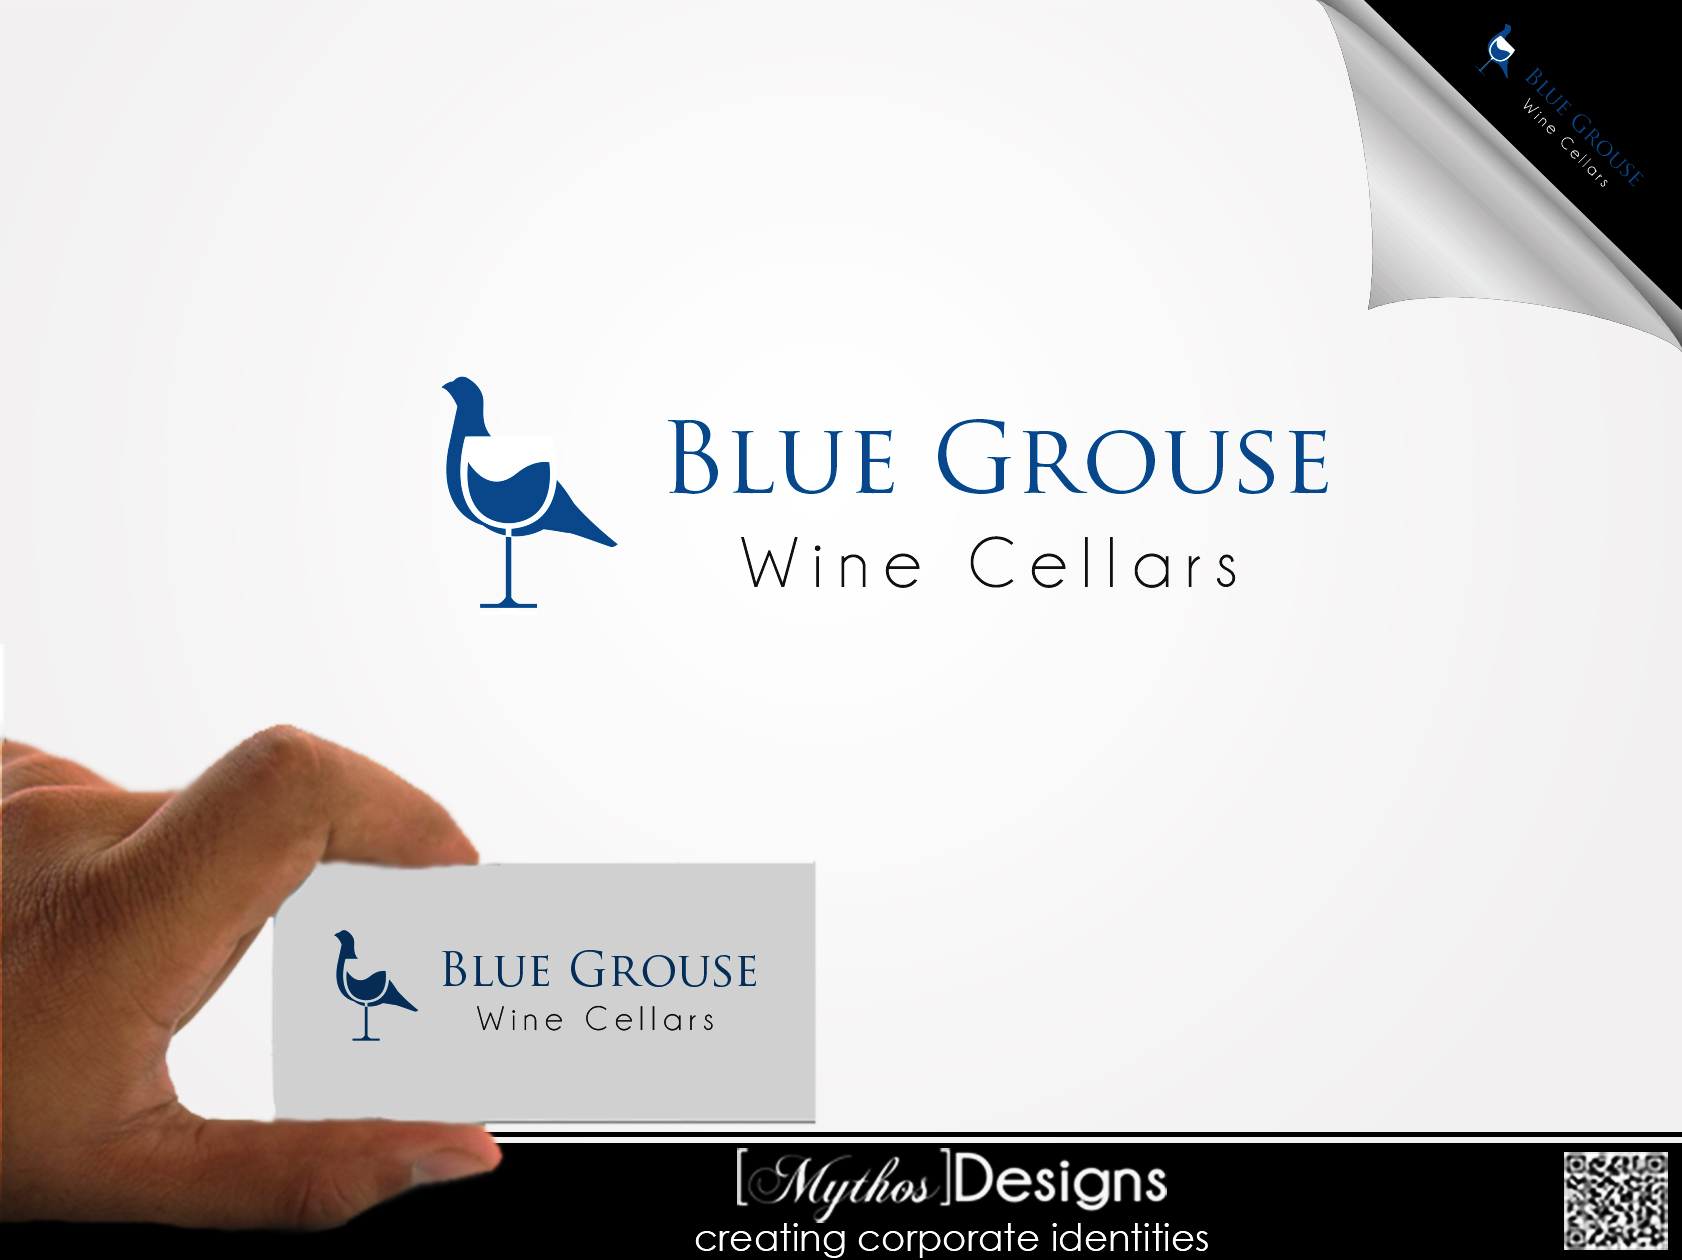 Logo Design by Mythos Designs - Entry No. 14 in the Logo Design Contest Creative Logo Design for Blue Grouse Wine Cellars.